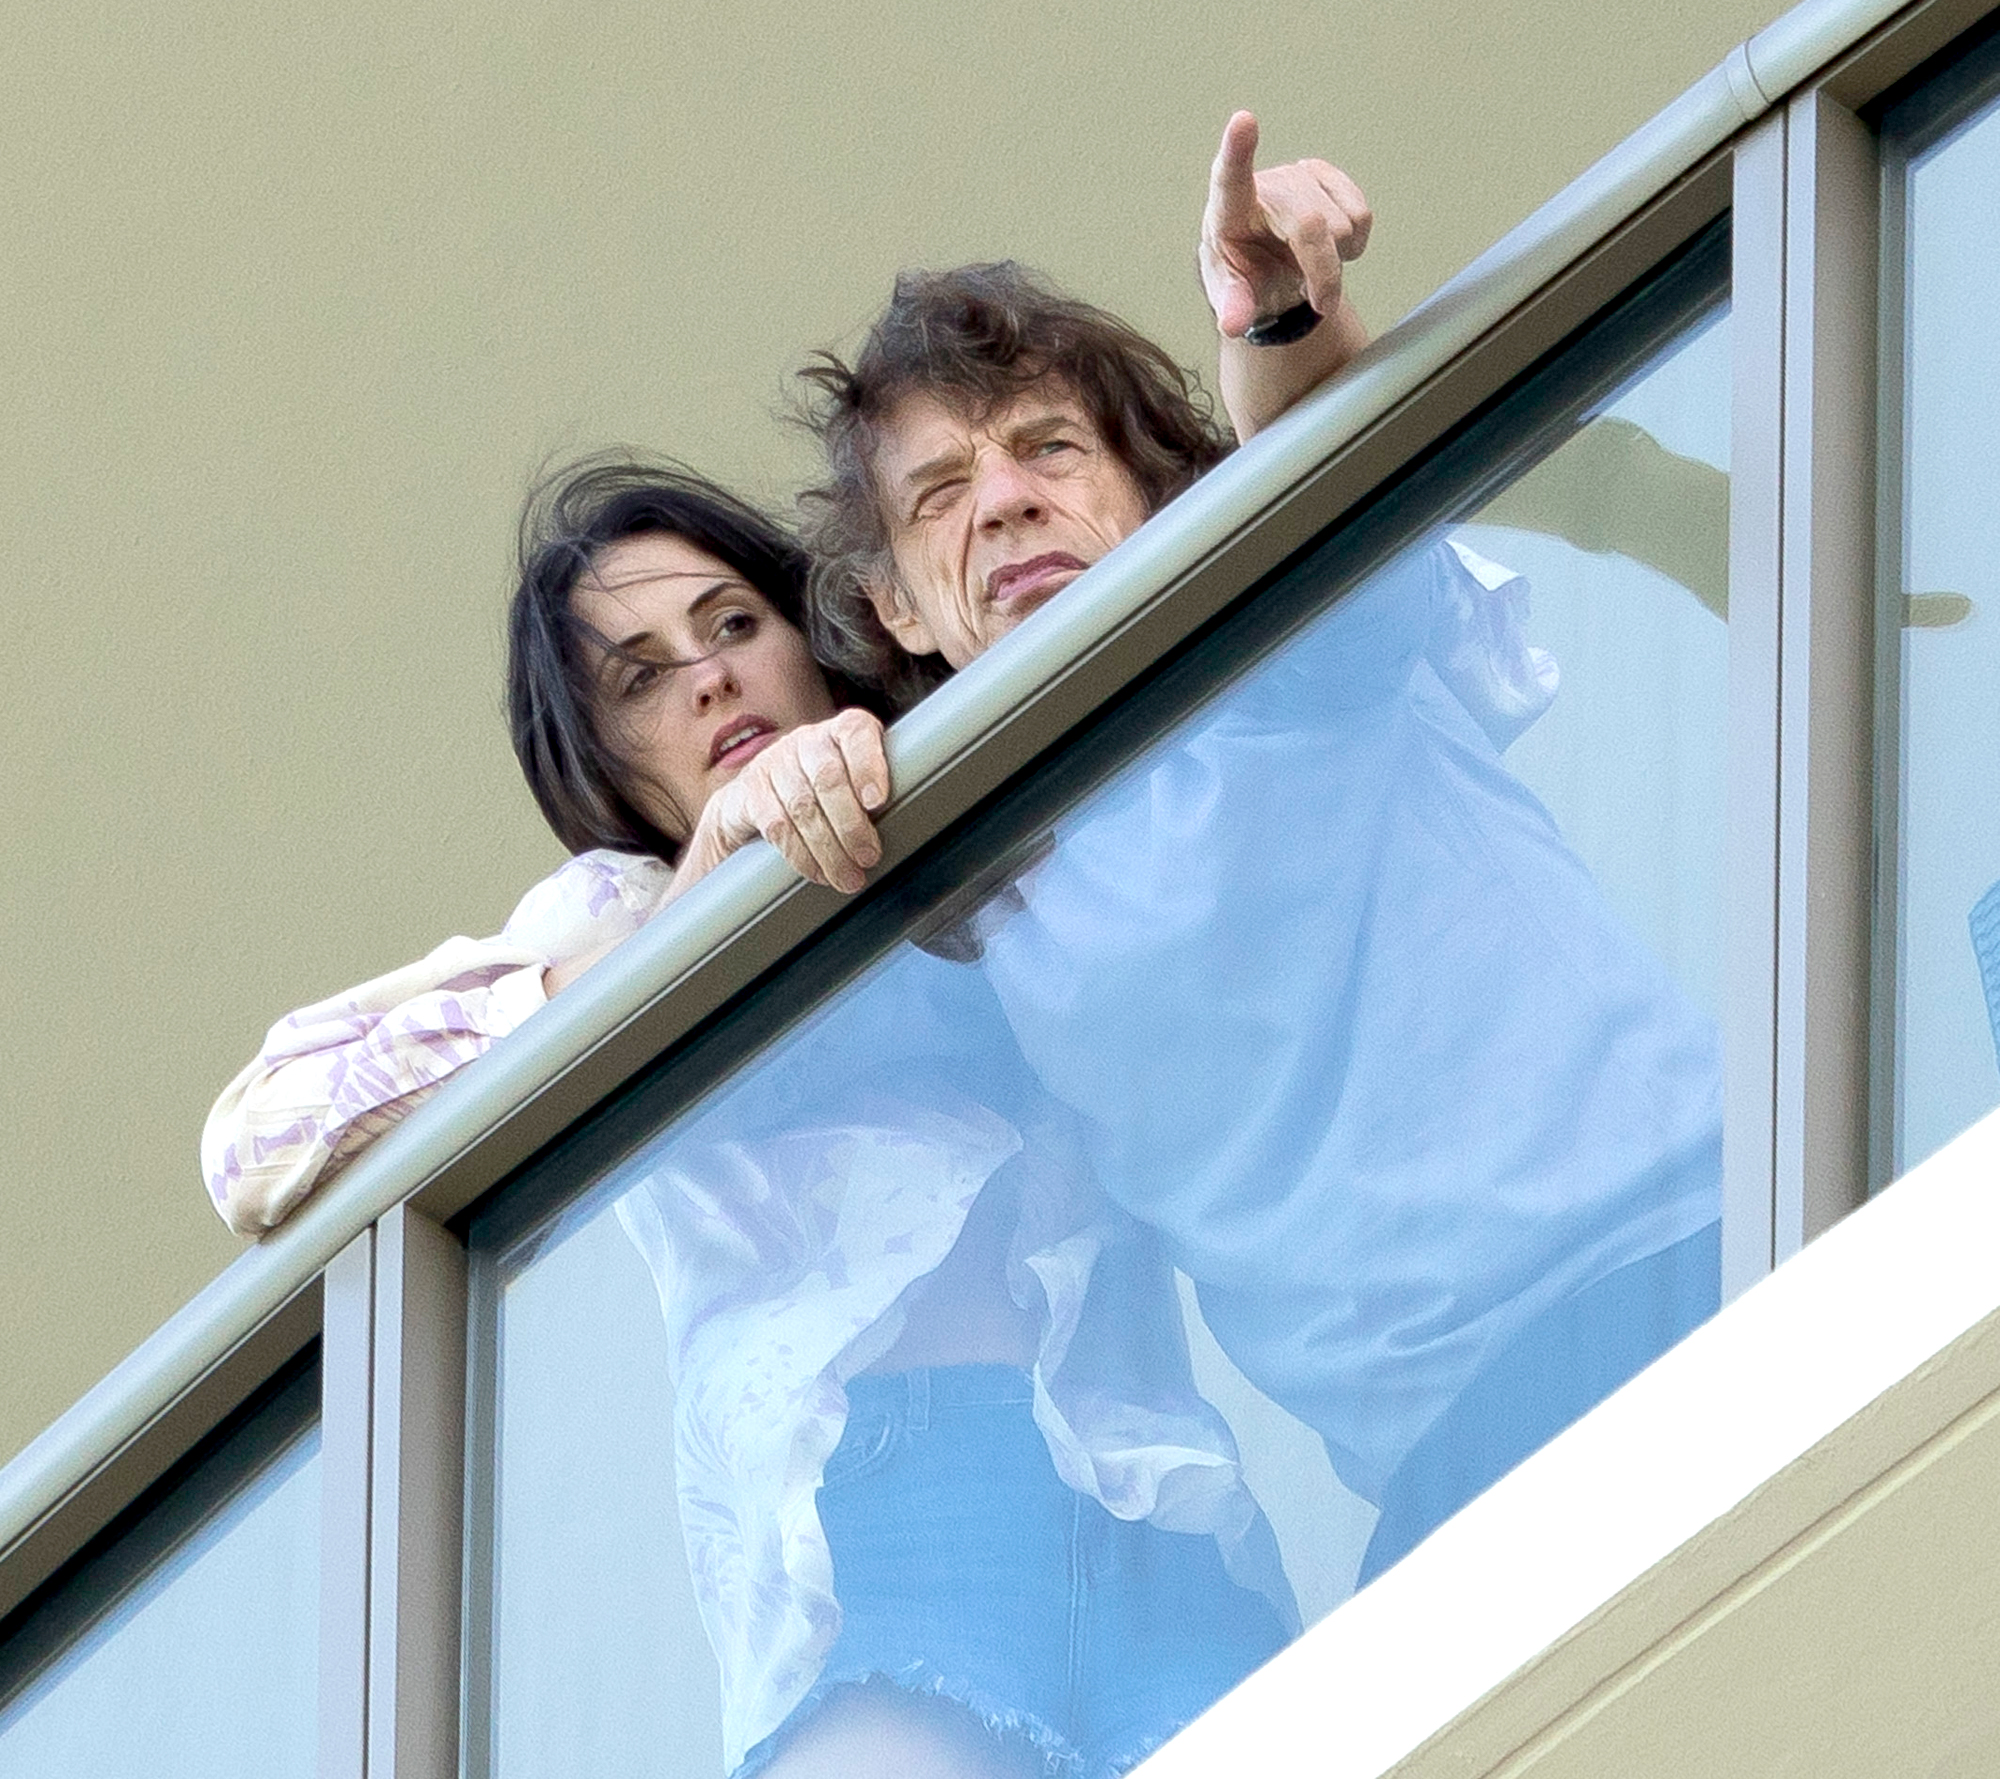 Mick-Jagger-and-girlfriend-Melanie-Hamrick - Mick Jagger and girlfriend Melanie Hamrick on their balcony in Miami on March 31, 2019.